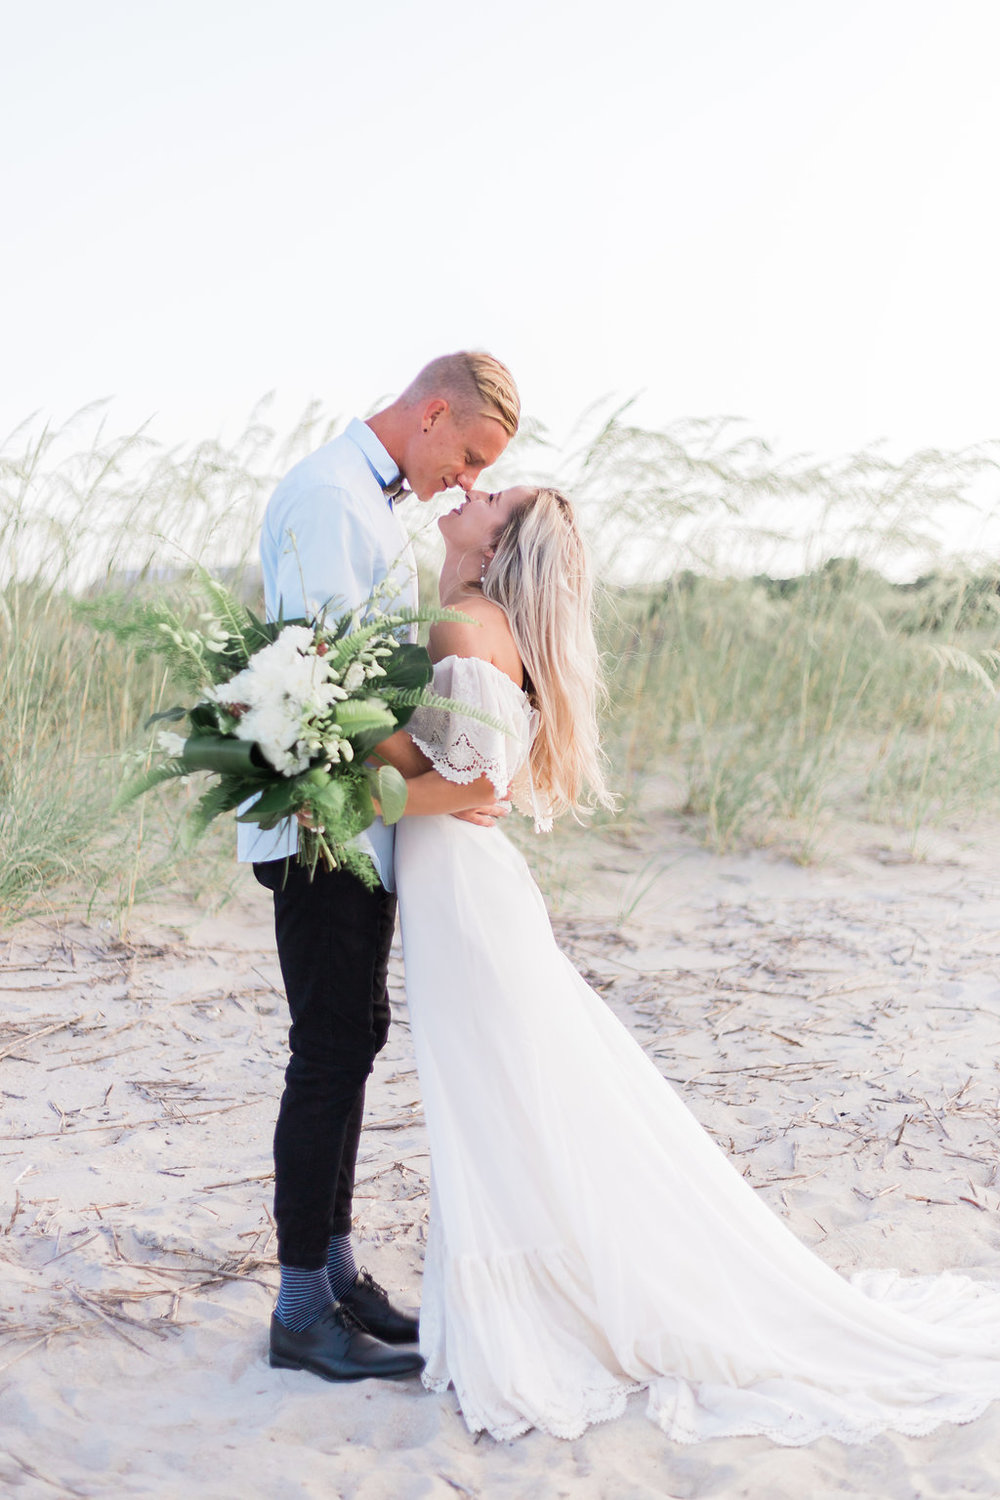 savannah-bridal-shop-last-minute-wedding-planning-details-you-should-start-on-NOW-bluebell-photography-daughters-of-simone-tybee-island-wedding-4.jpg